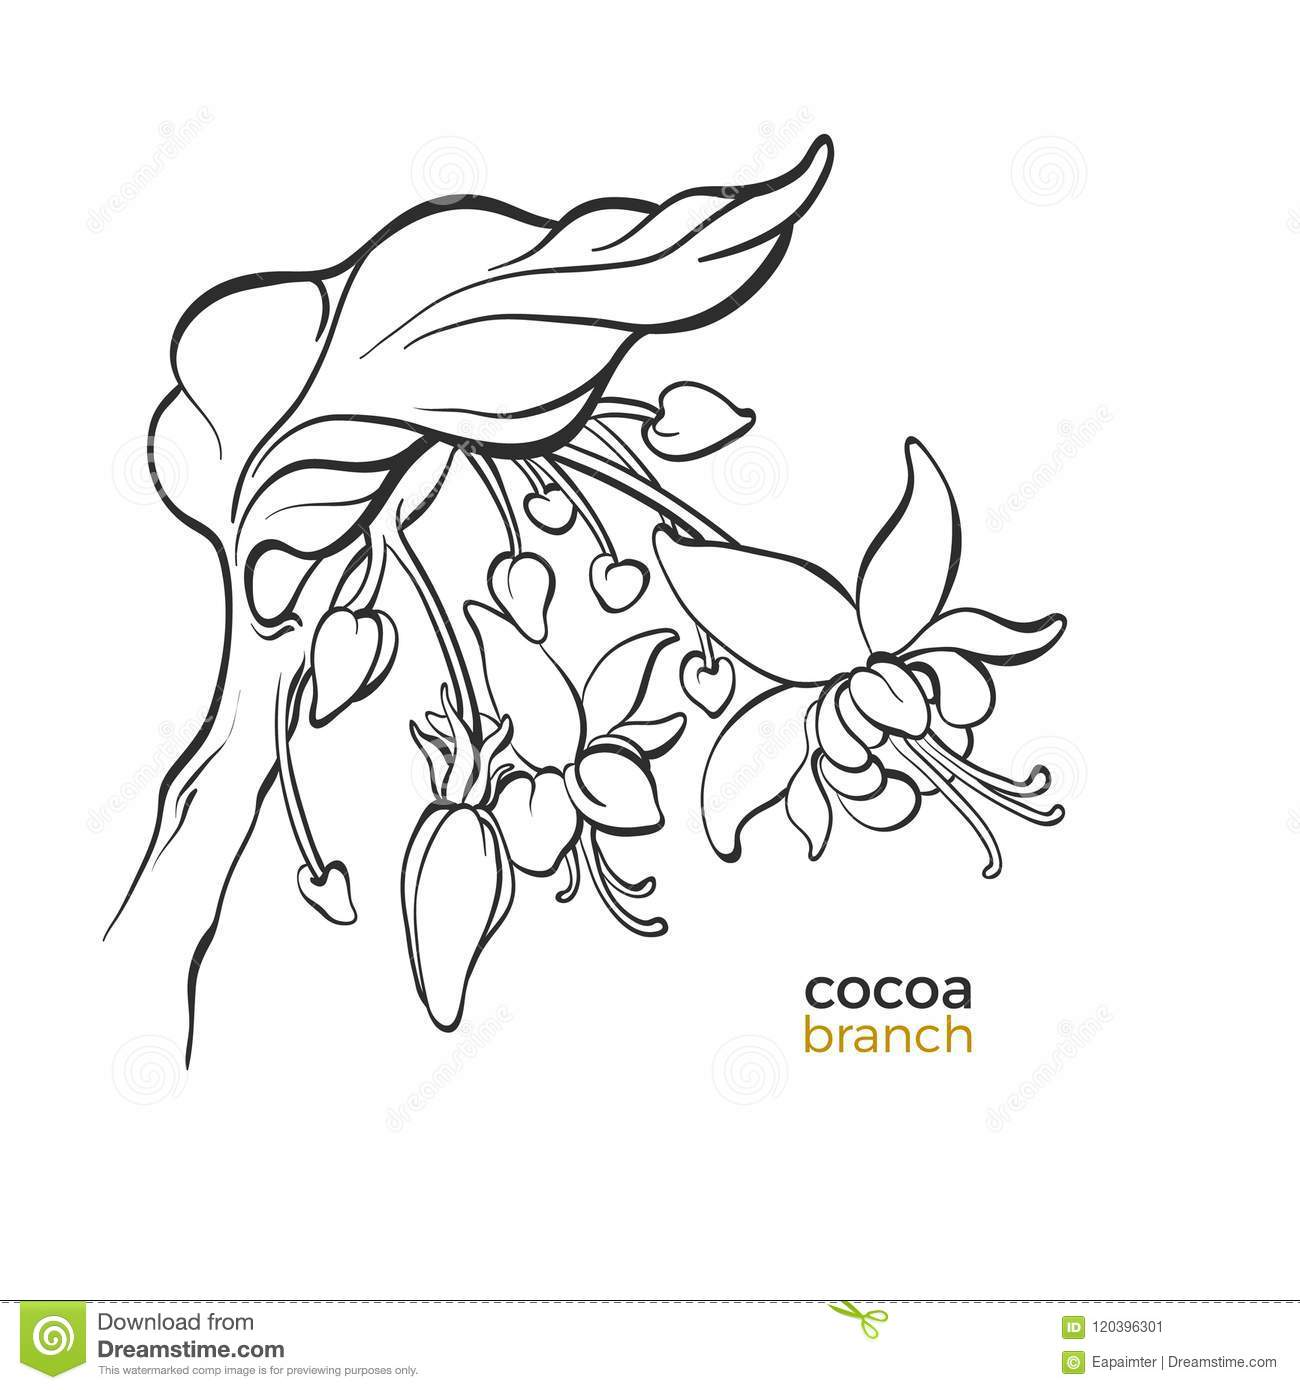 Vector template of cocoa tree branches stock illustration download vector template of cocoa tree branches stock illustration illustration of nature chocolate maxwellsz